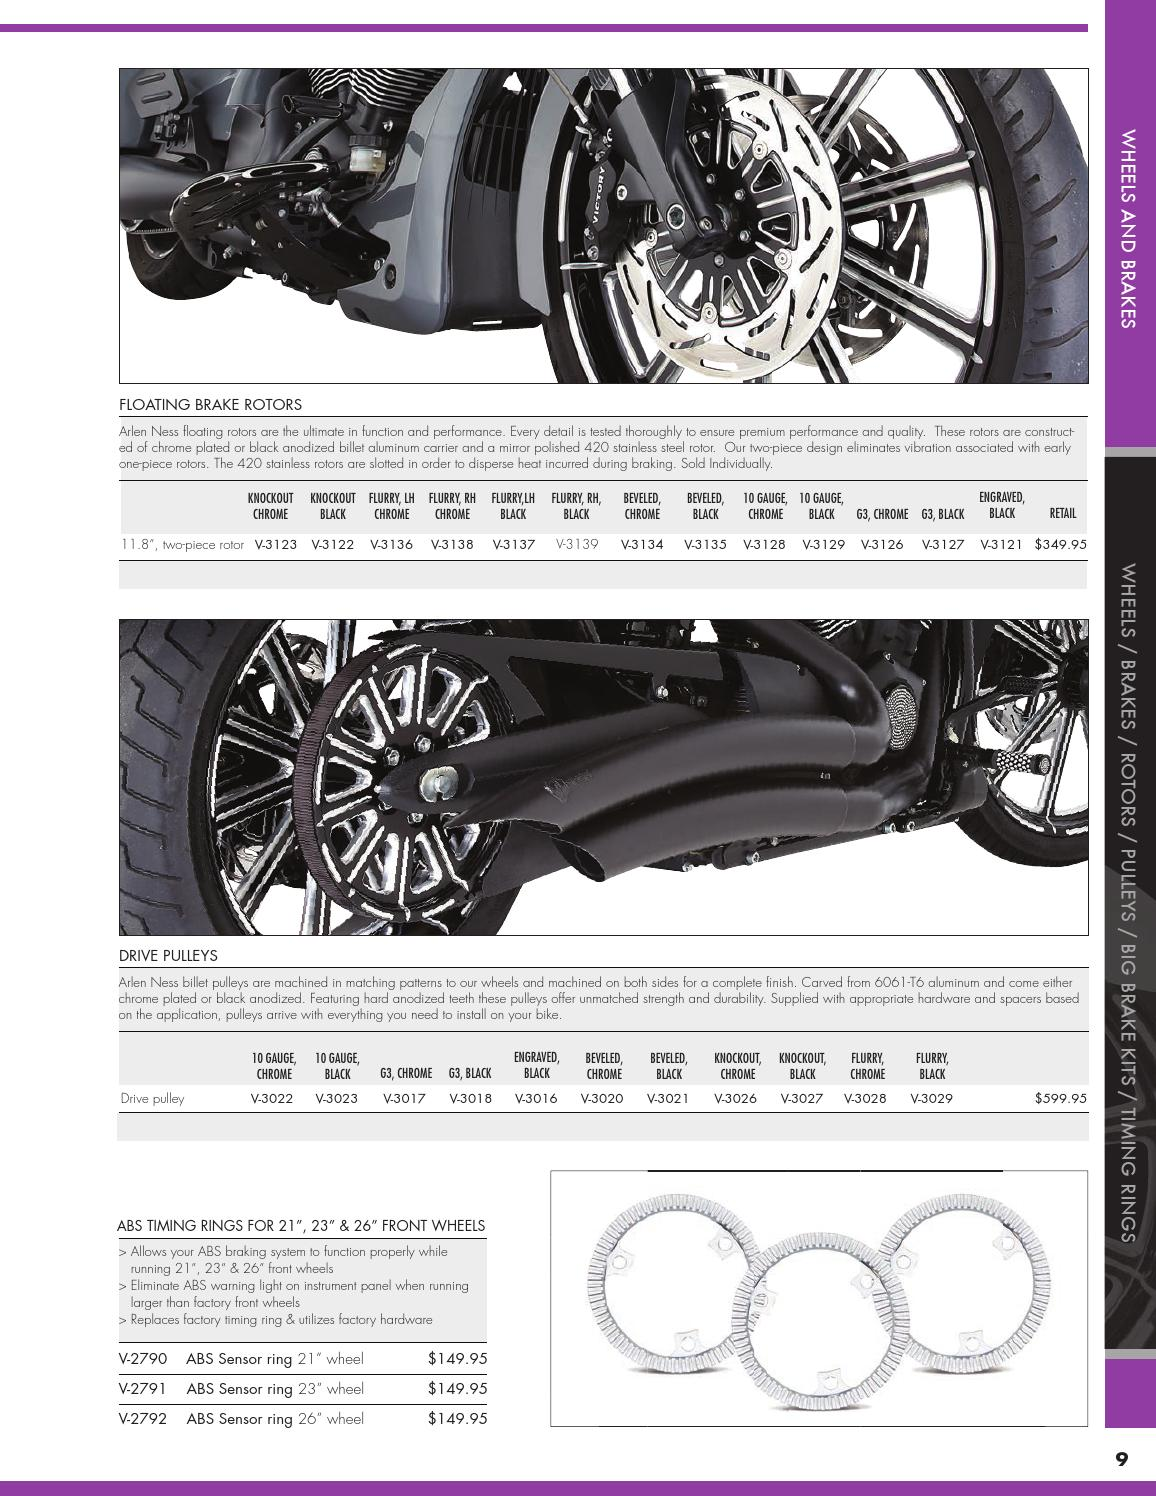 Arlen Ness 2015 Parts & Accessories For Victory by Arlen Ness - issuu